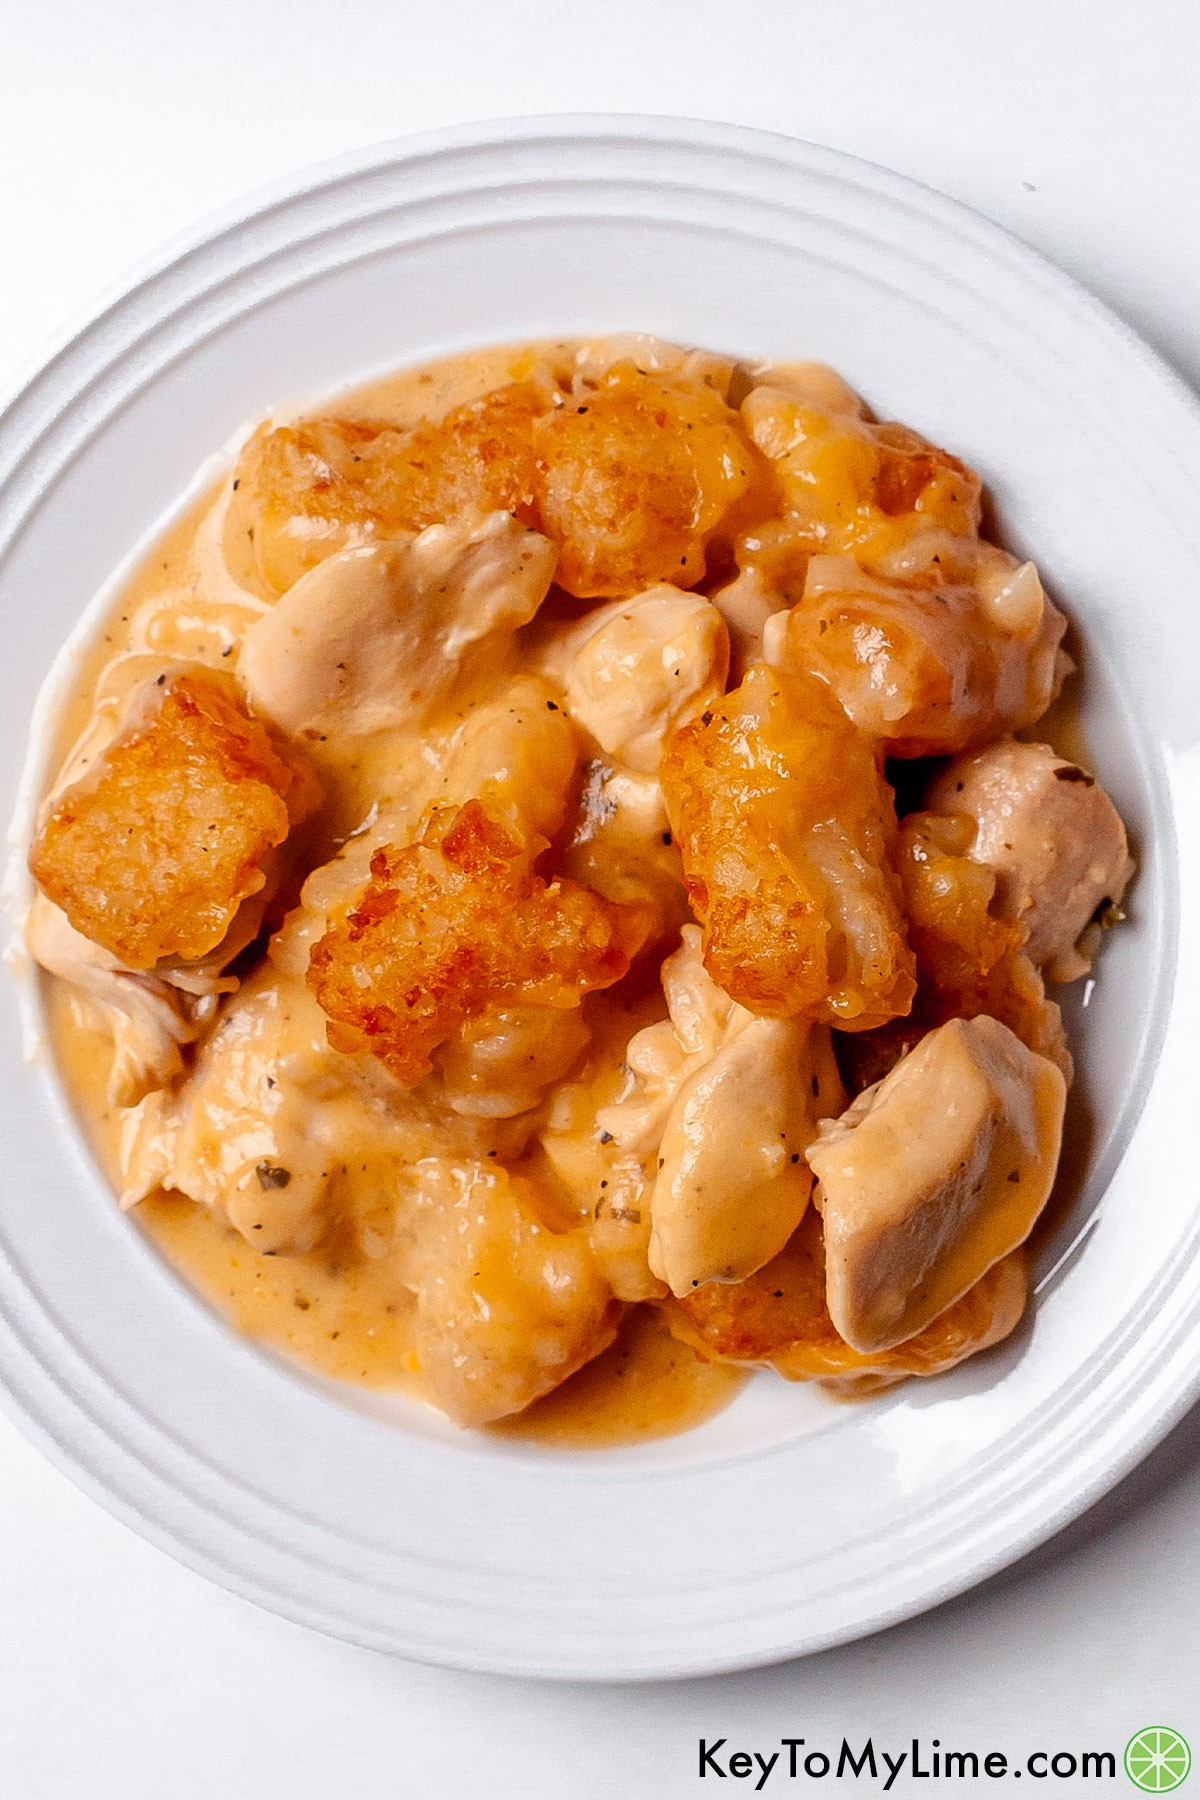 A serving of chicken tater tot casserole on a plate.